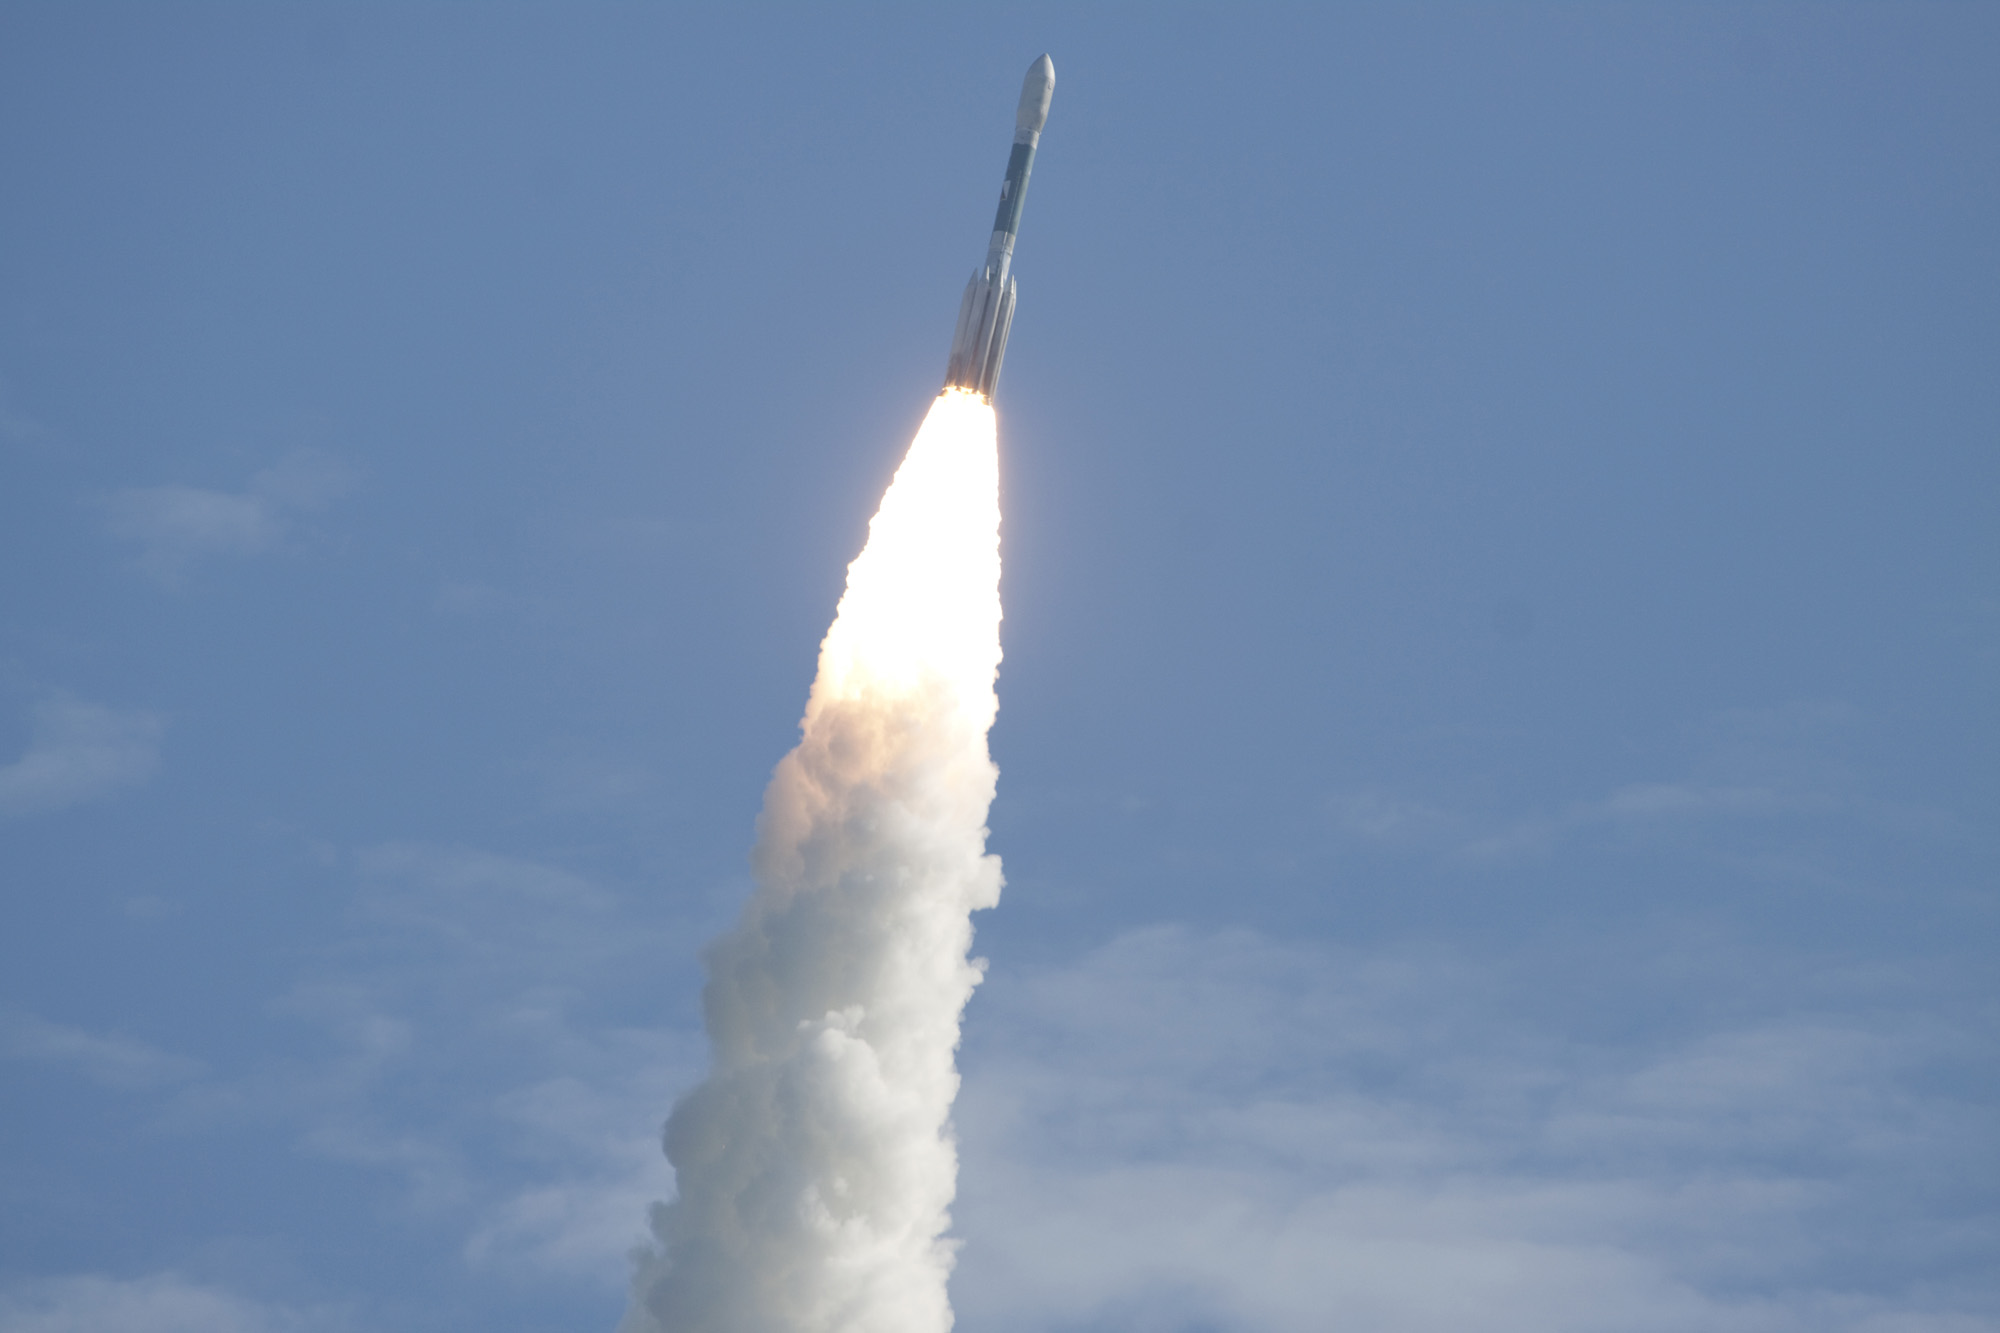 Fla. – Fire and smoke light up a blue sky as a United Launch Alliance Delta II Heavy rocket propels NASA's Gravity Recovery and Interior Laboratory (GRAIL) mission into space on Sept. 10, 2011.